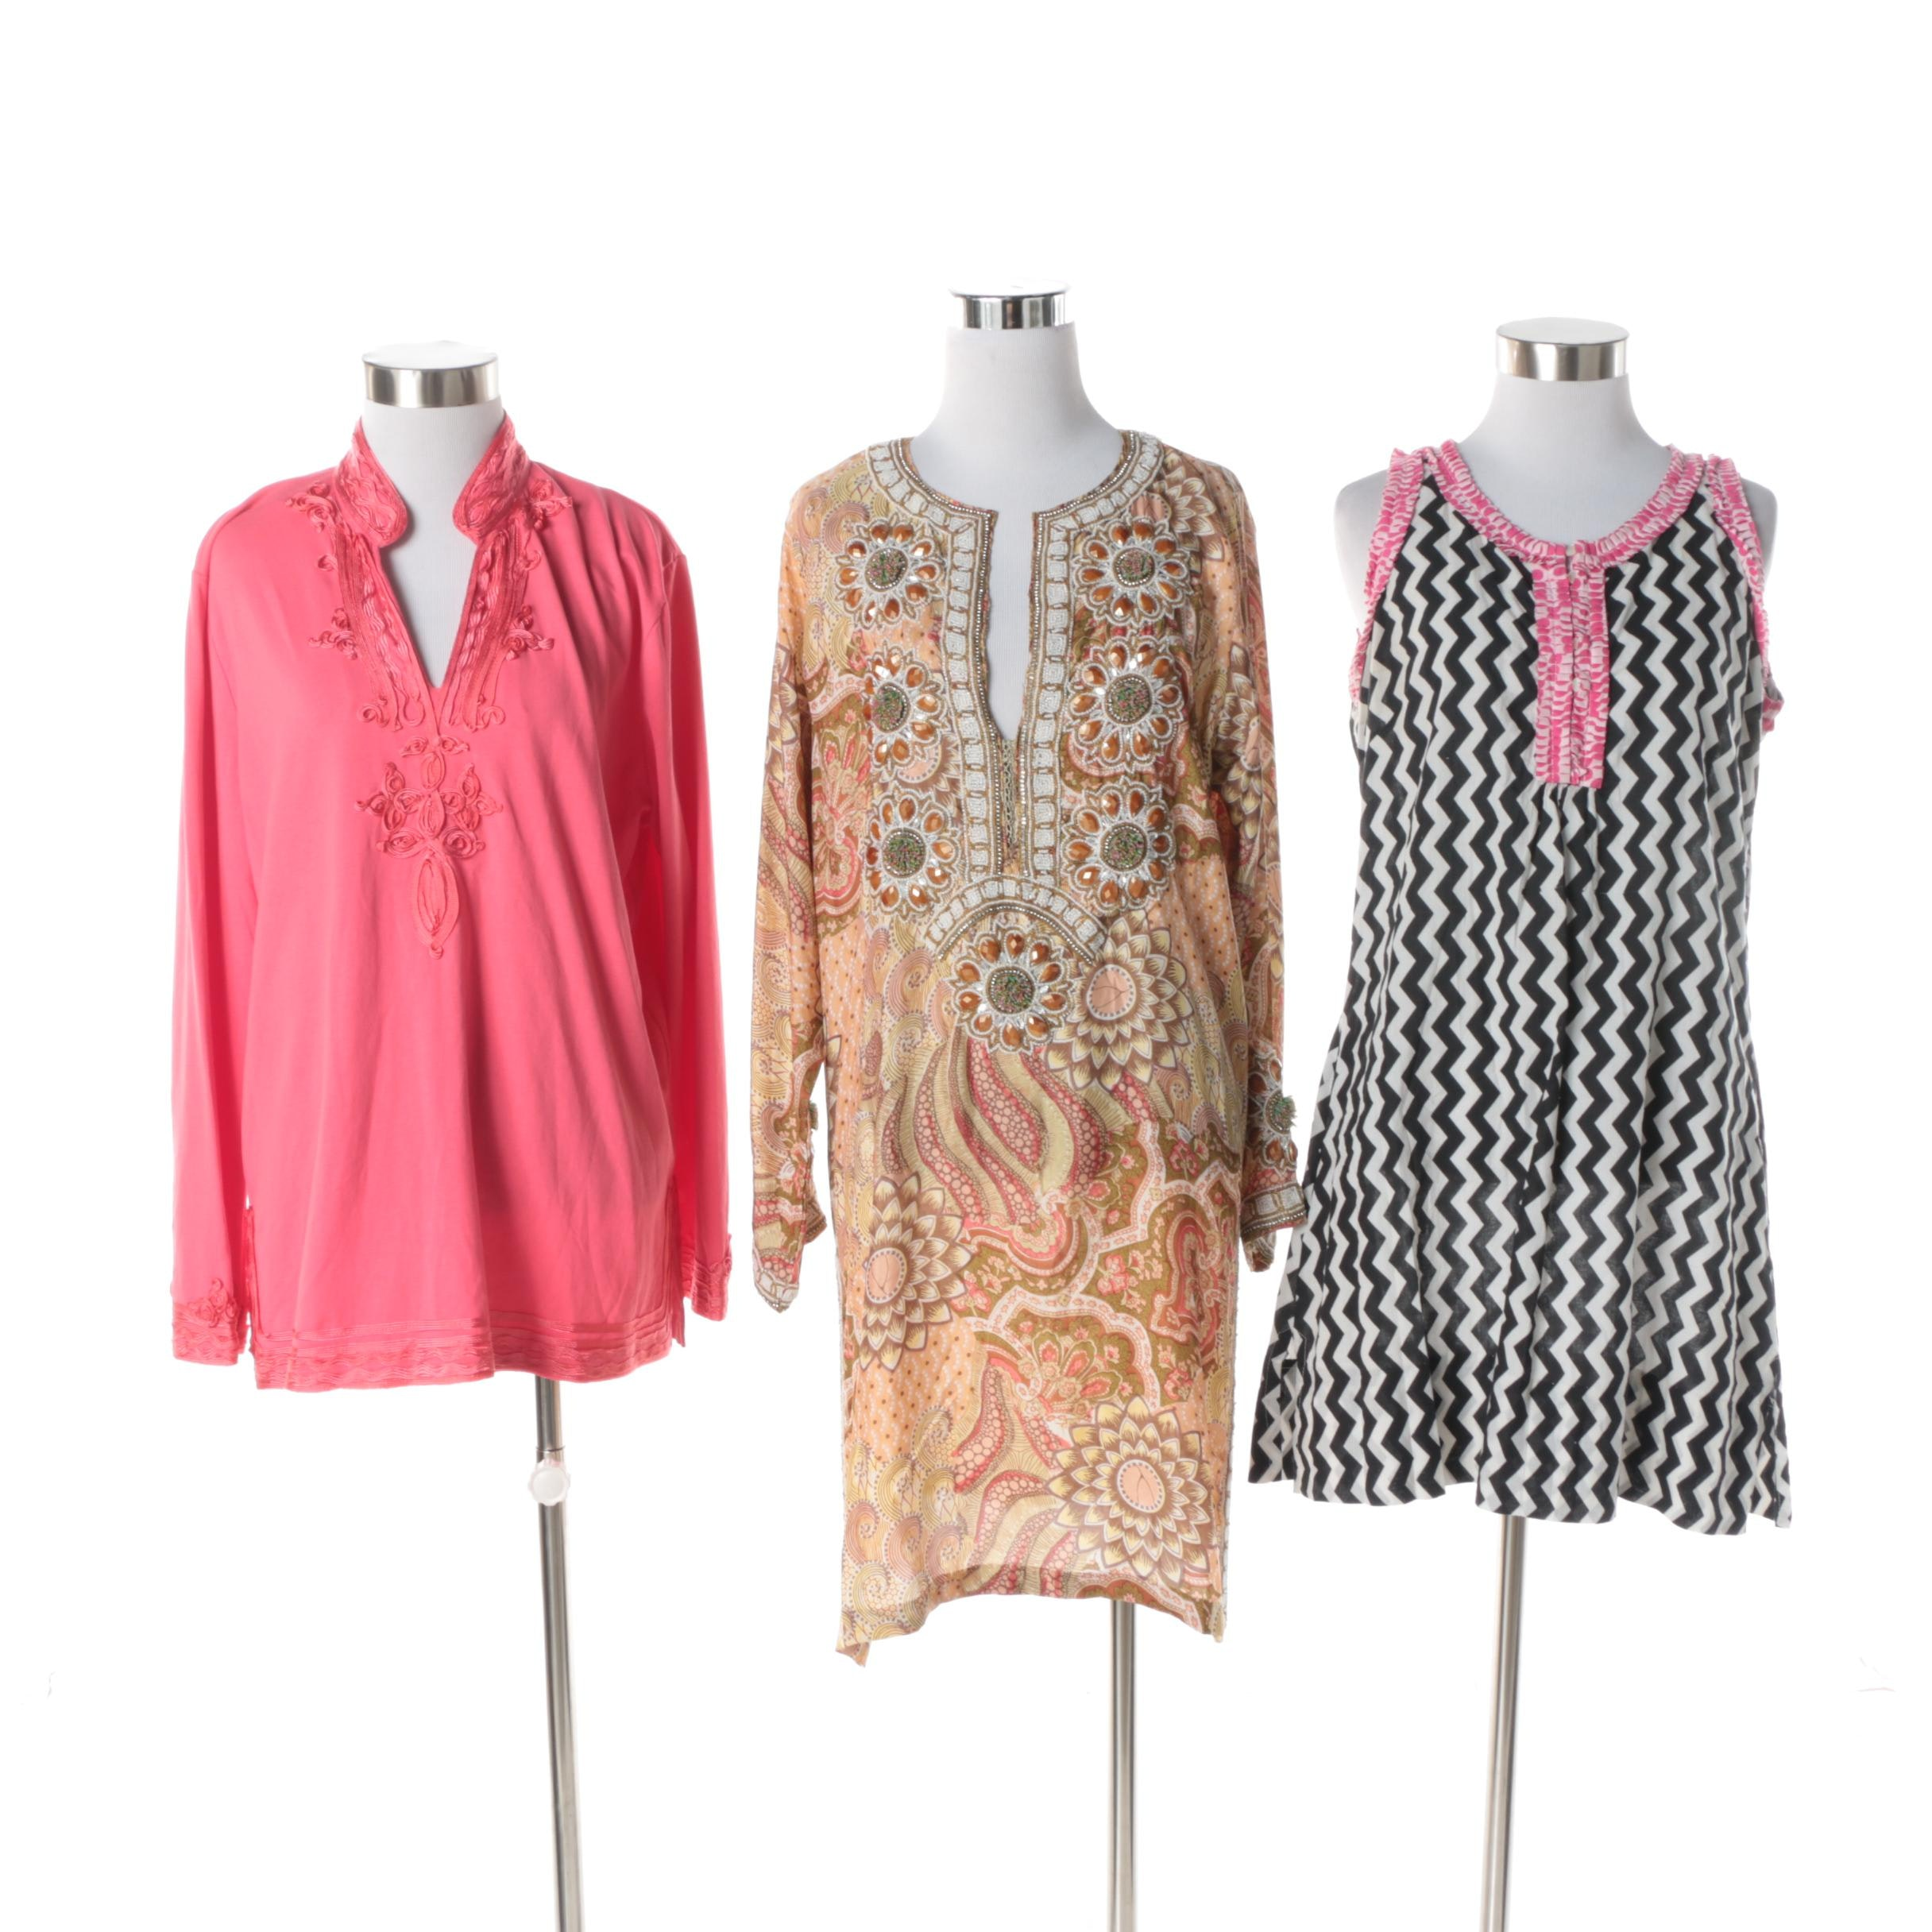 Akbar Delights and Gretchen Scott Dresses with Pink Brand Soutache Tunic